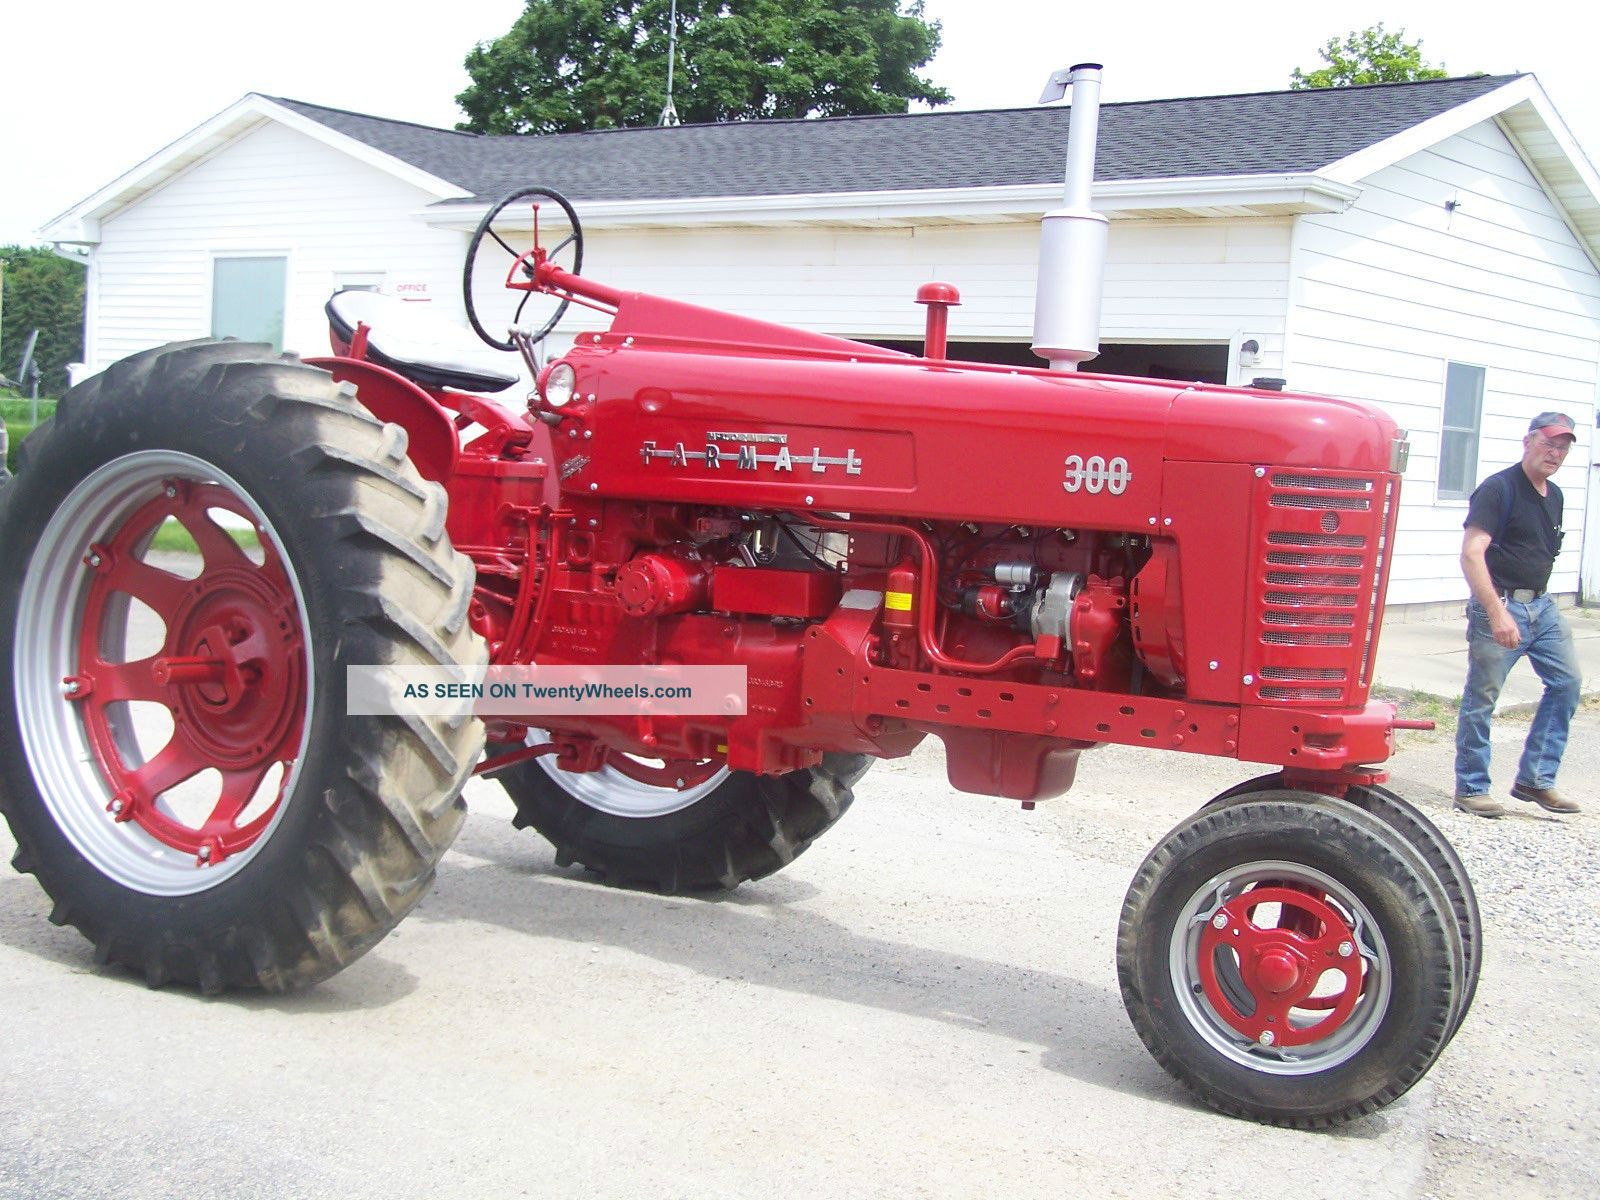 Restored Antique Tractors : Farmall tractor restored for display or parade